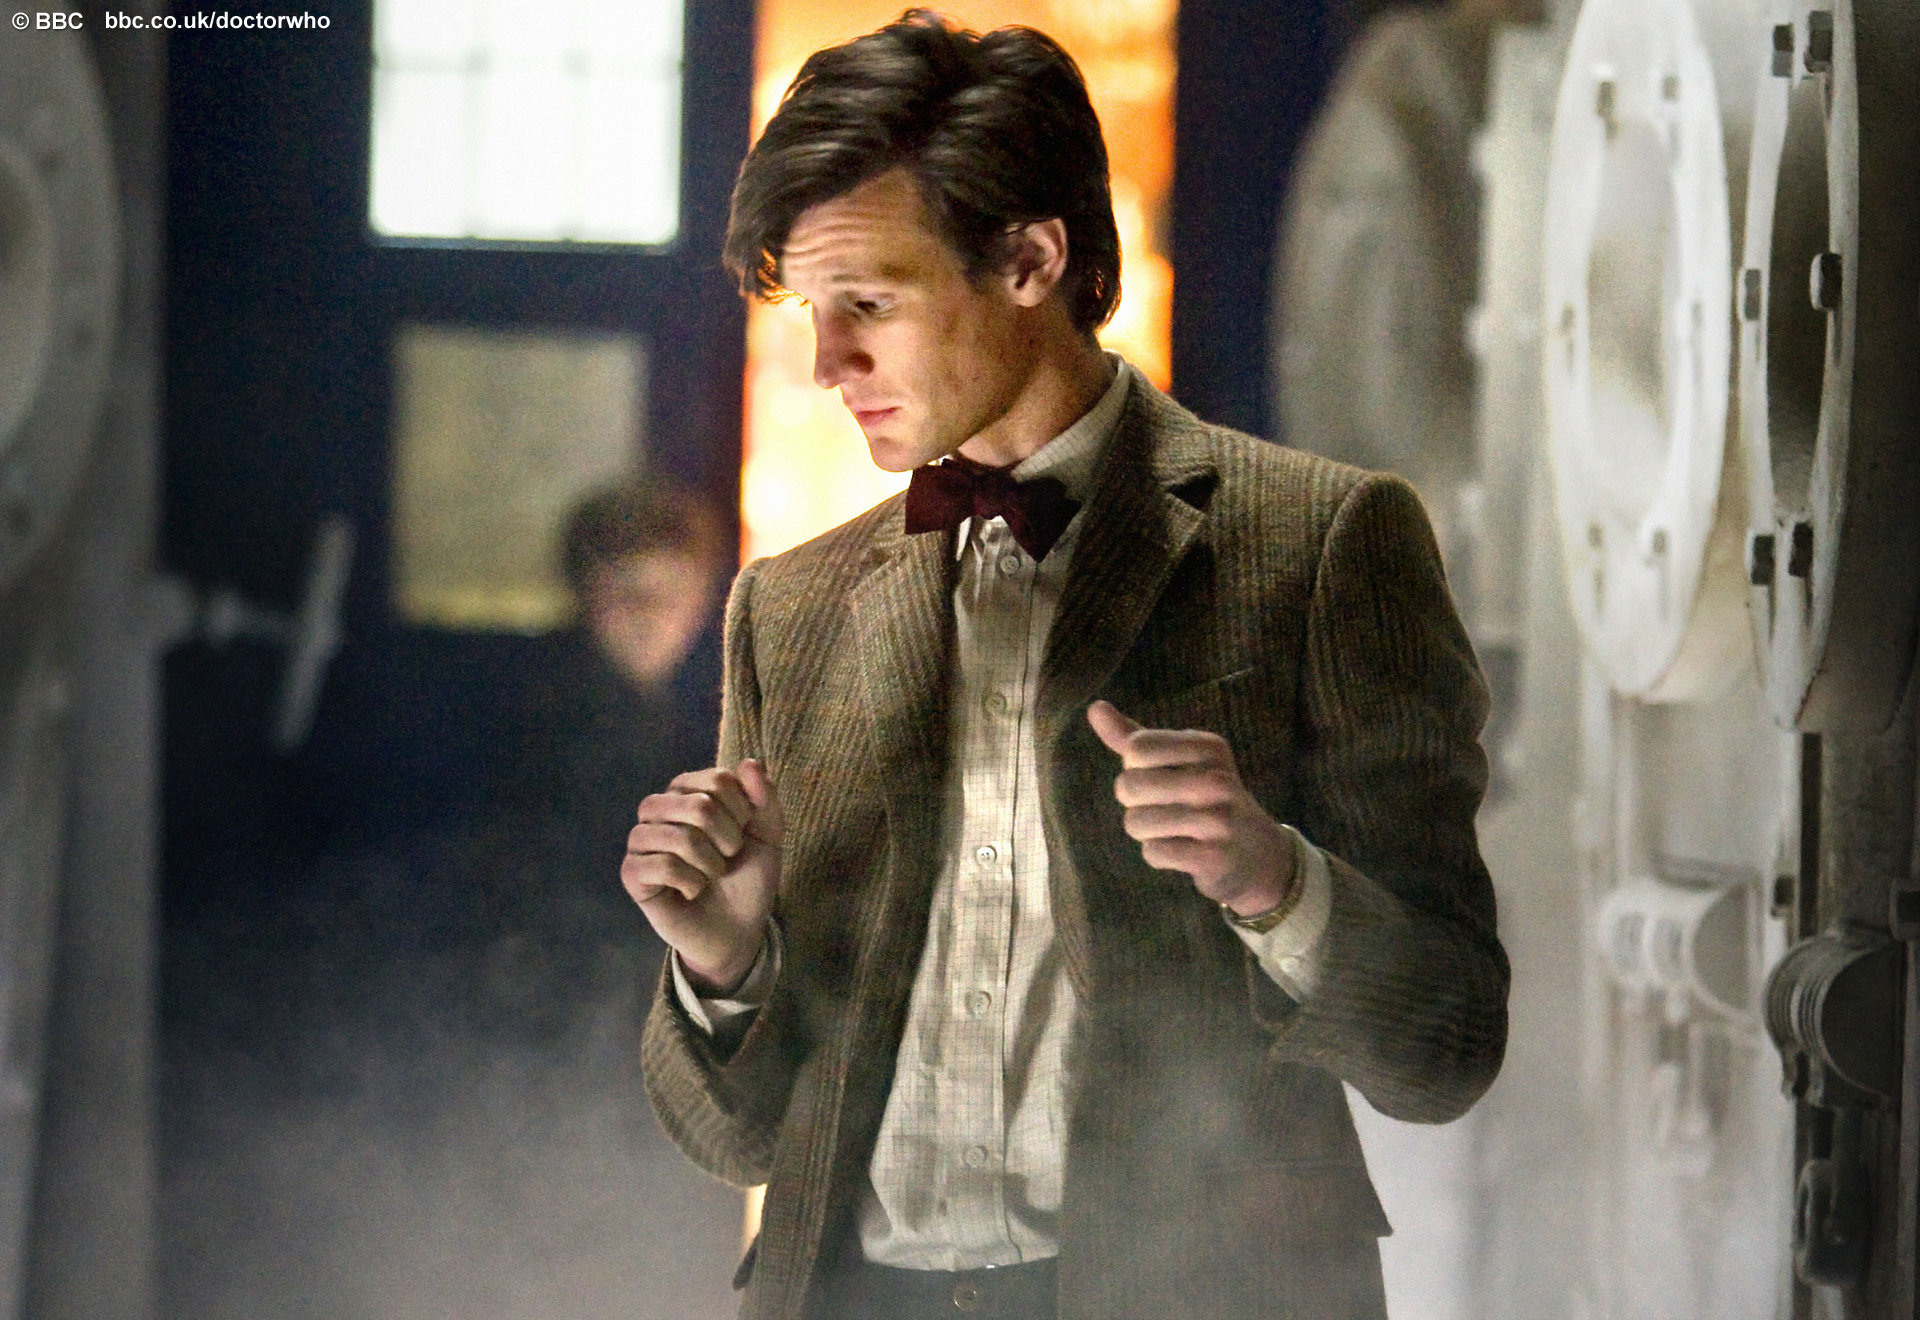 http://static.bbc.co.uk/images/ic/qe/crop/946x532/doctorwho/episodes/d11/s01/e14/wallpapers/d11s01e14_wallpaper_12.jpg